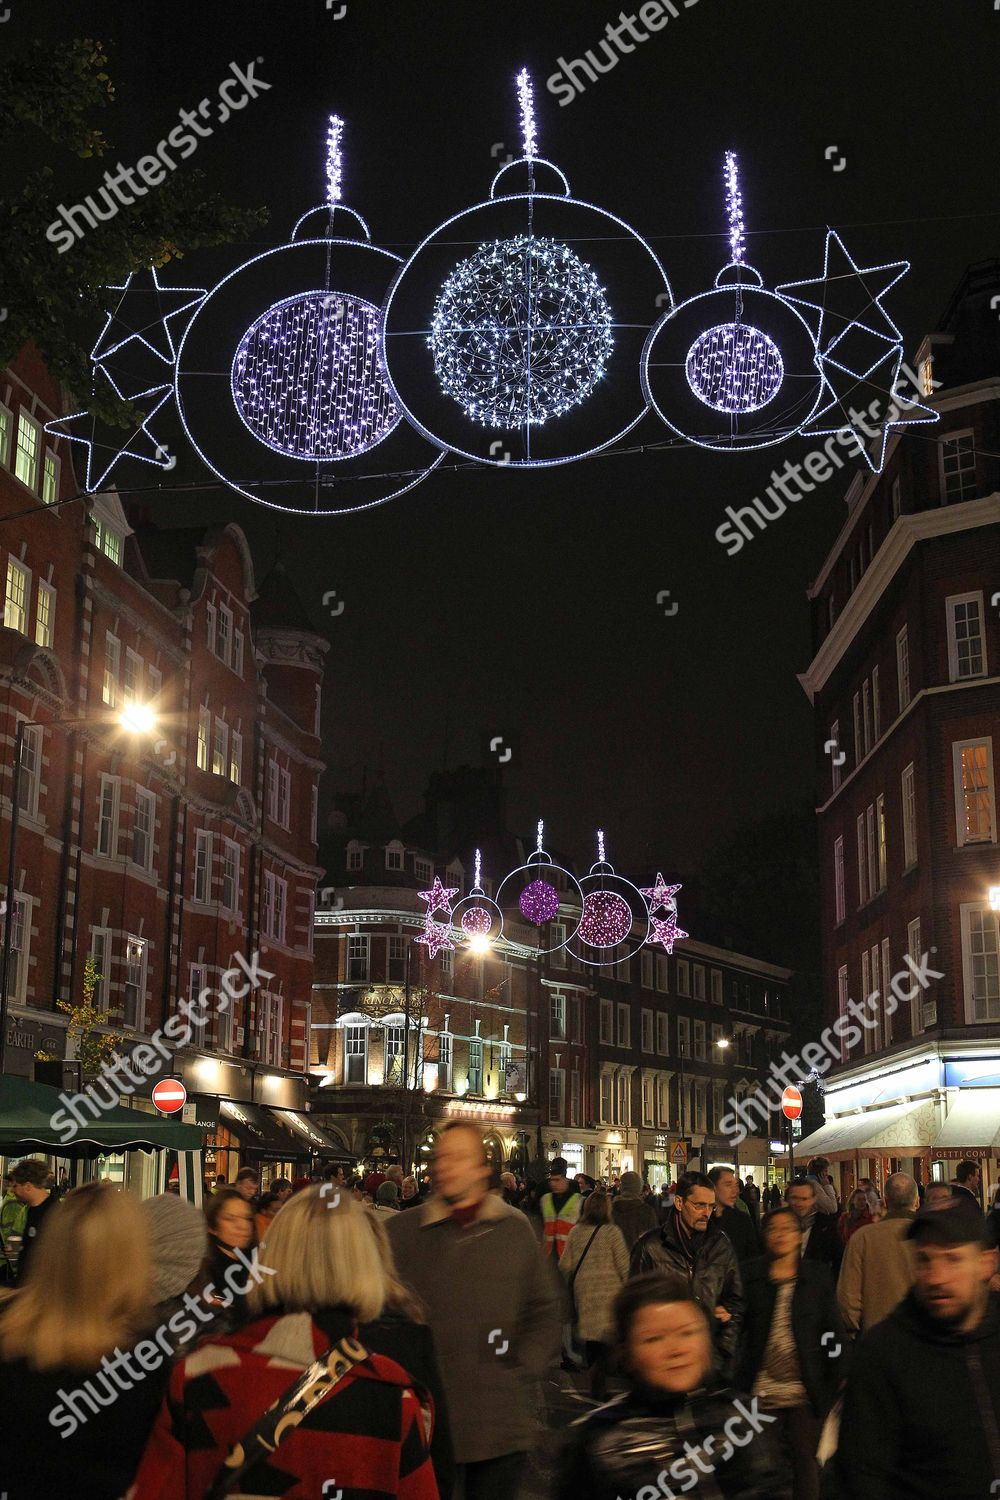 Phillips Christmas Lights.Marylebone High Street Christmas Lights Were Switched